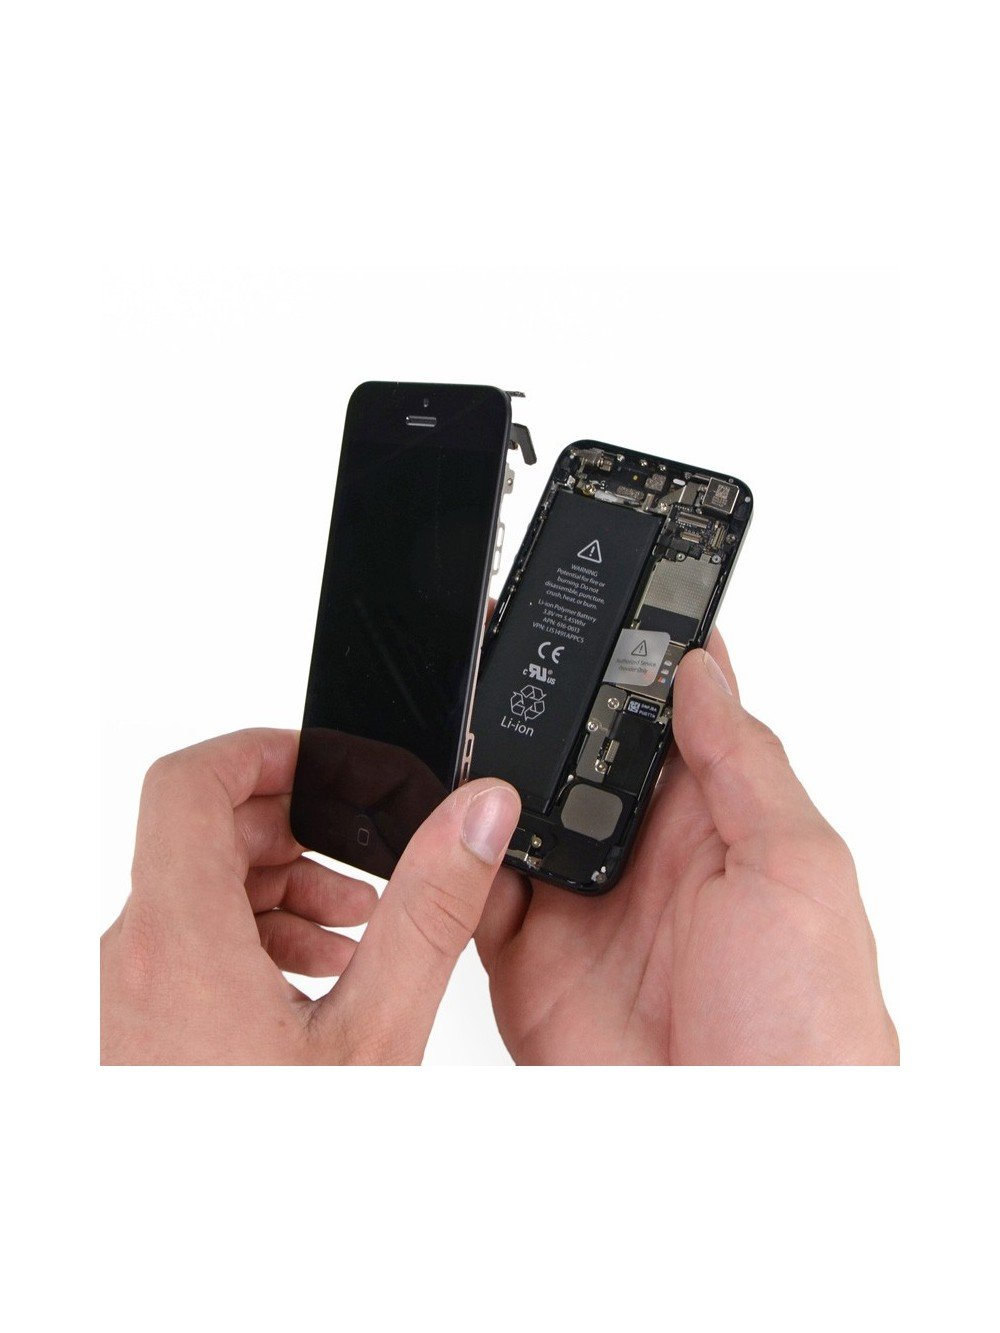 repair with original screen the iphone 5 pc express luxembourg. Black Bedroom Furniture Sets. Home Design Ideas